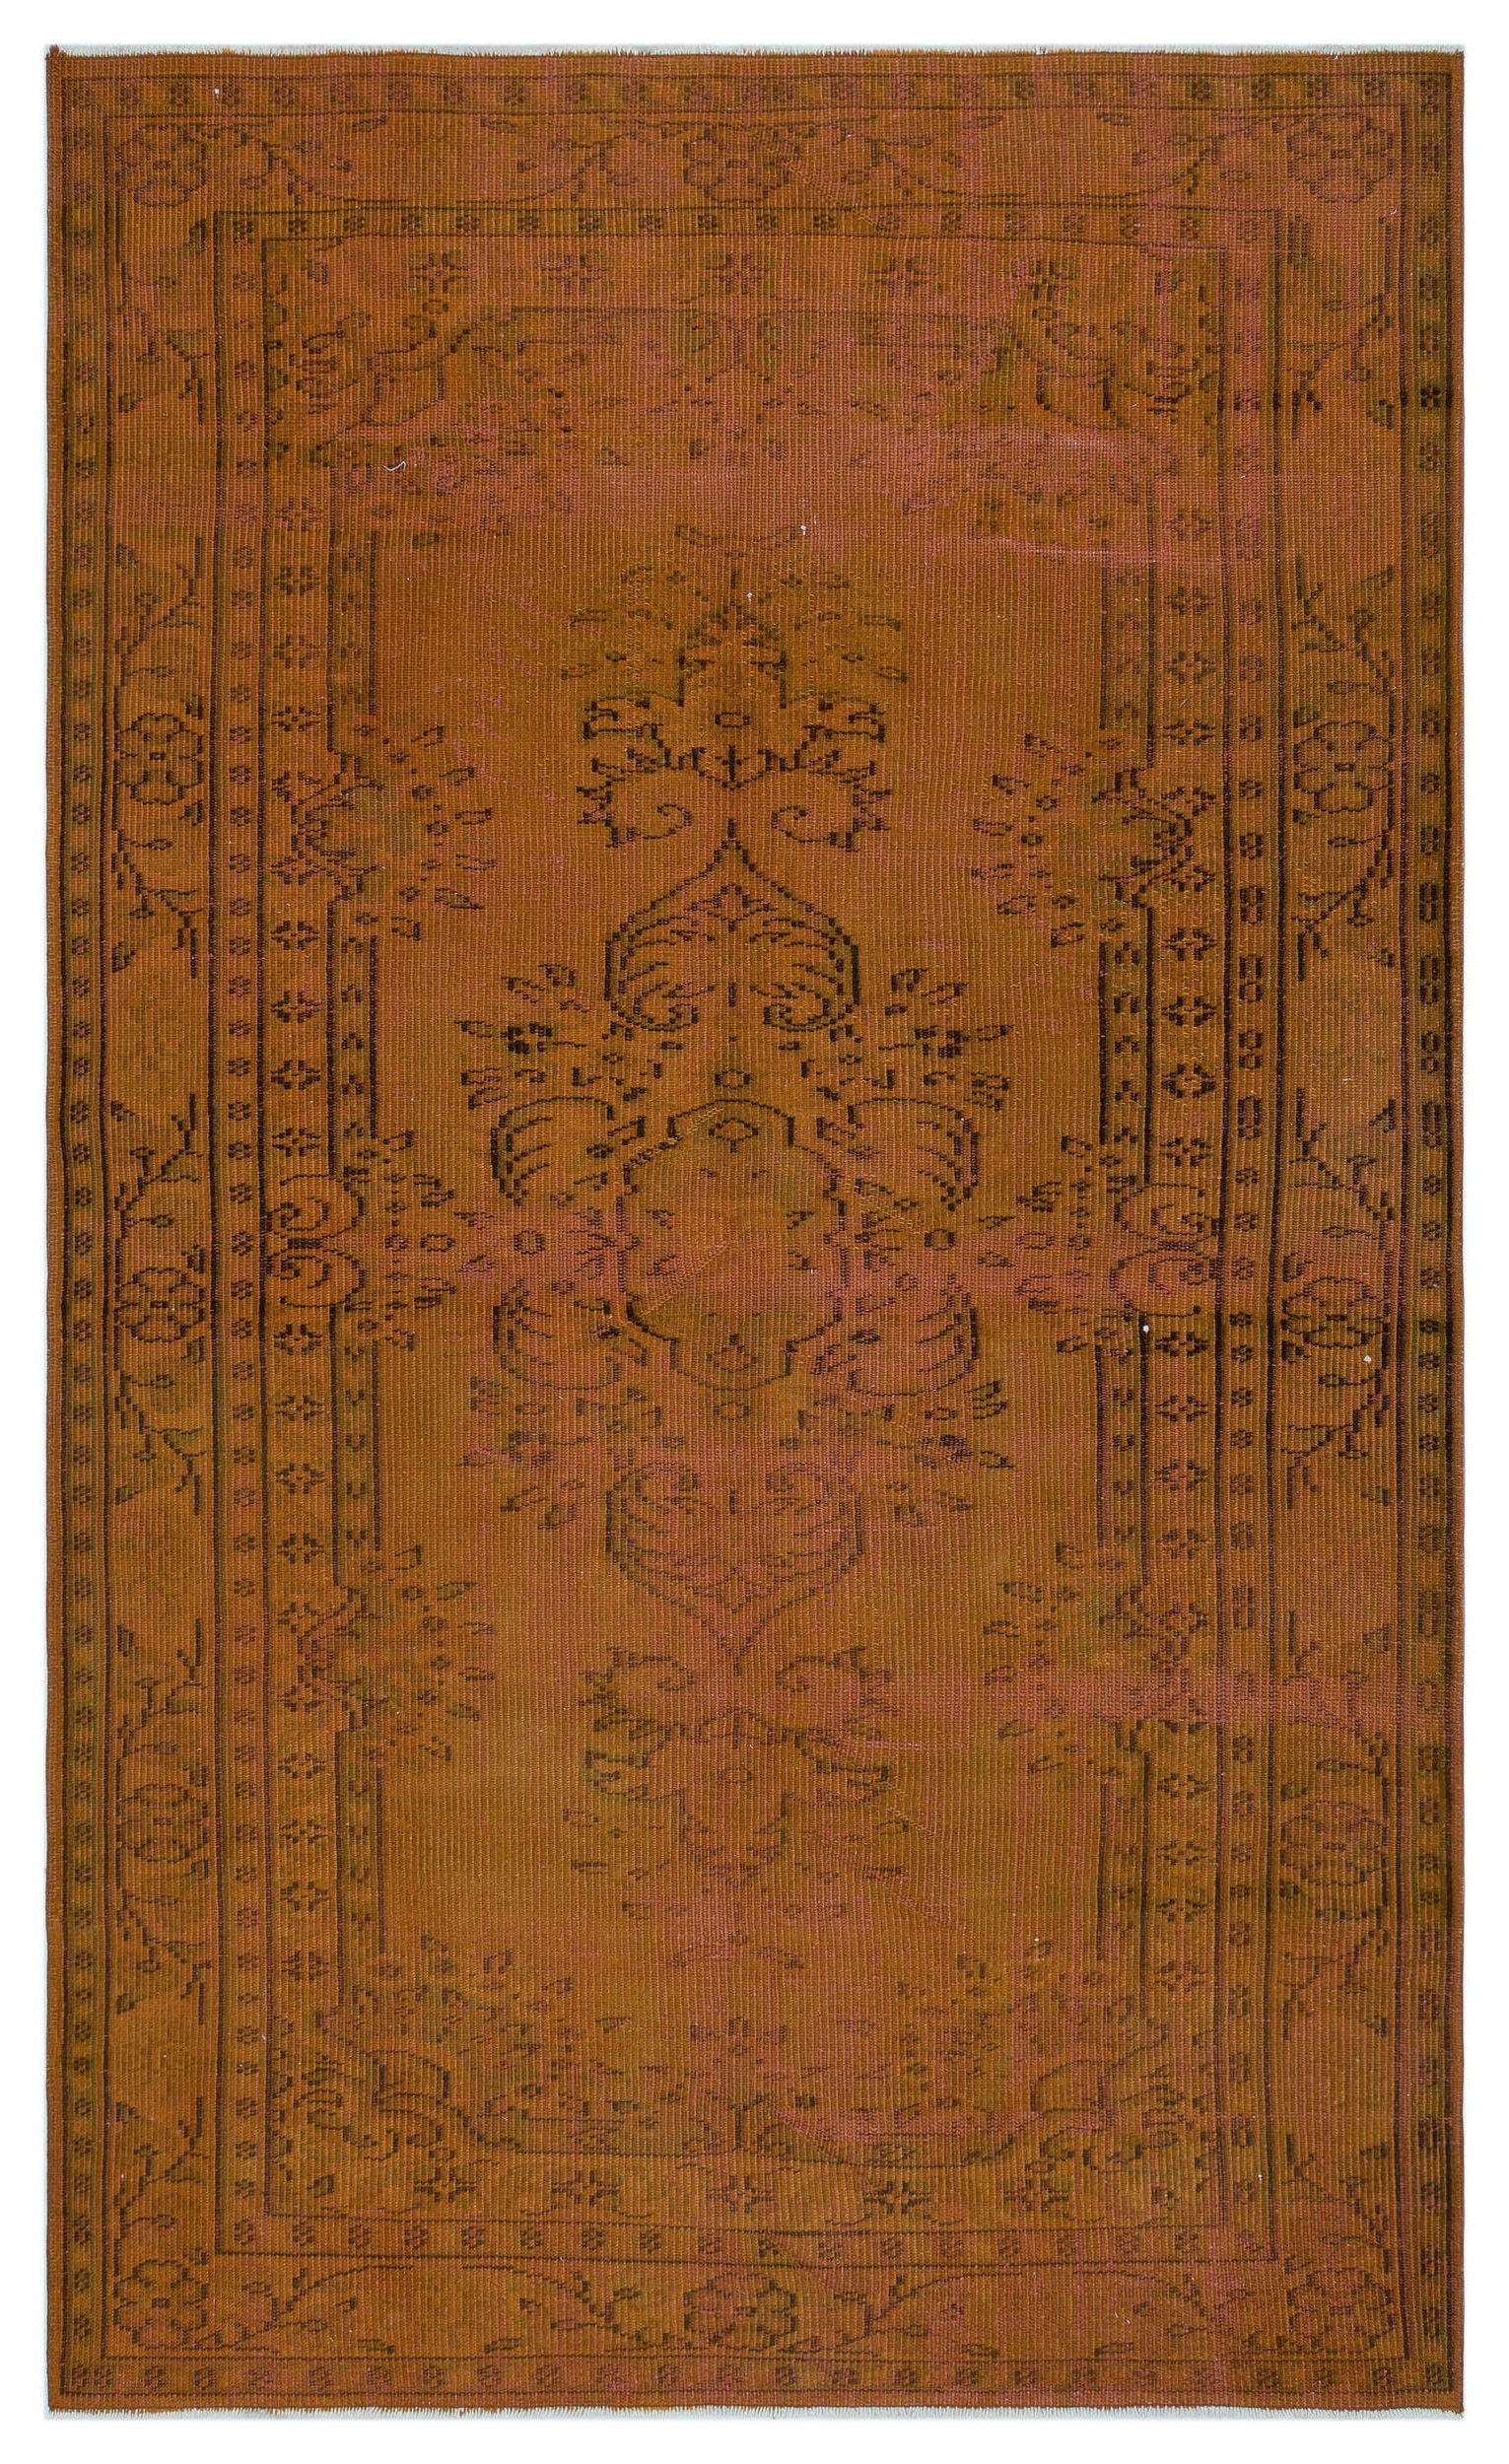 Brown Over Dyed Vintage Rug 4'10'' x 8'0'' ft 148 x 245 cm